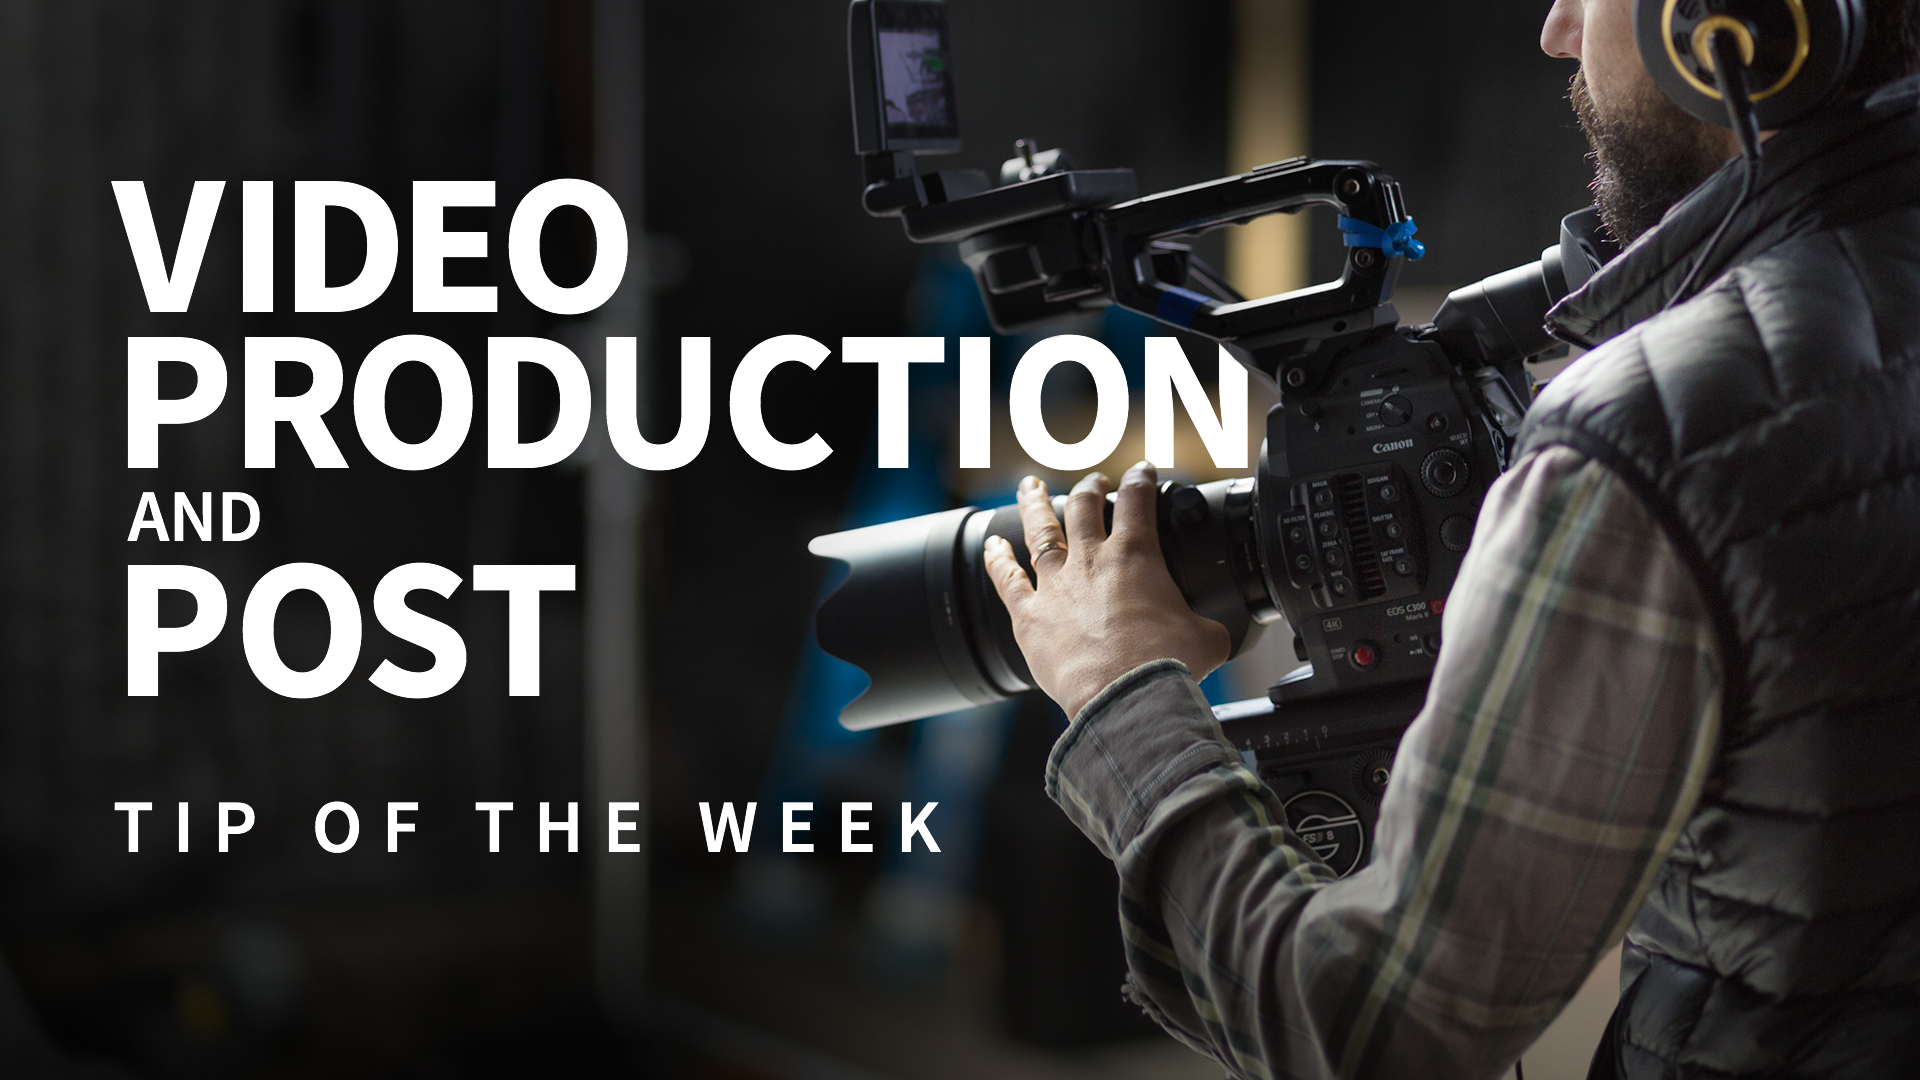 Performing a custom white balance: Video Production and Post Tip of the Week